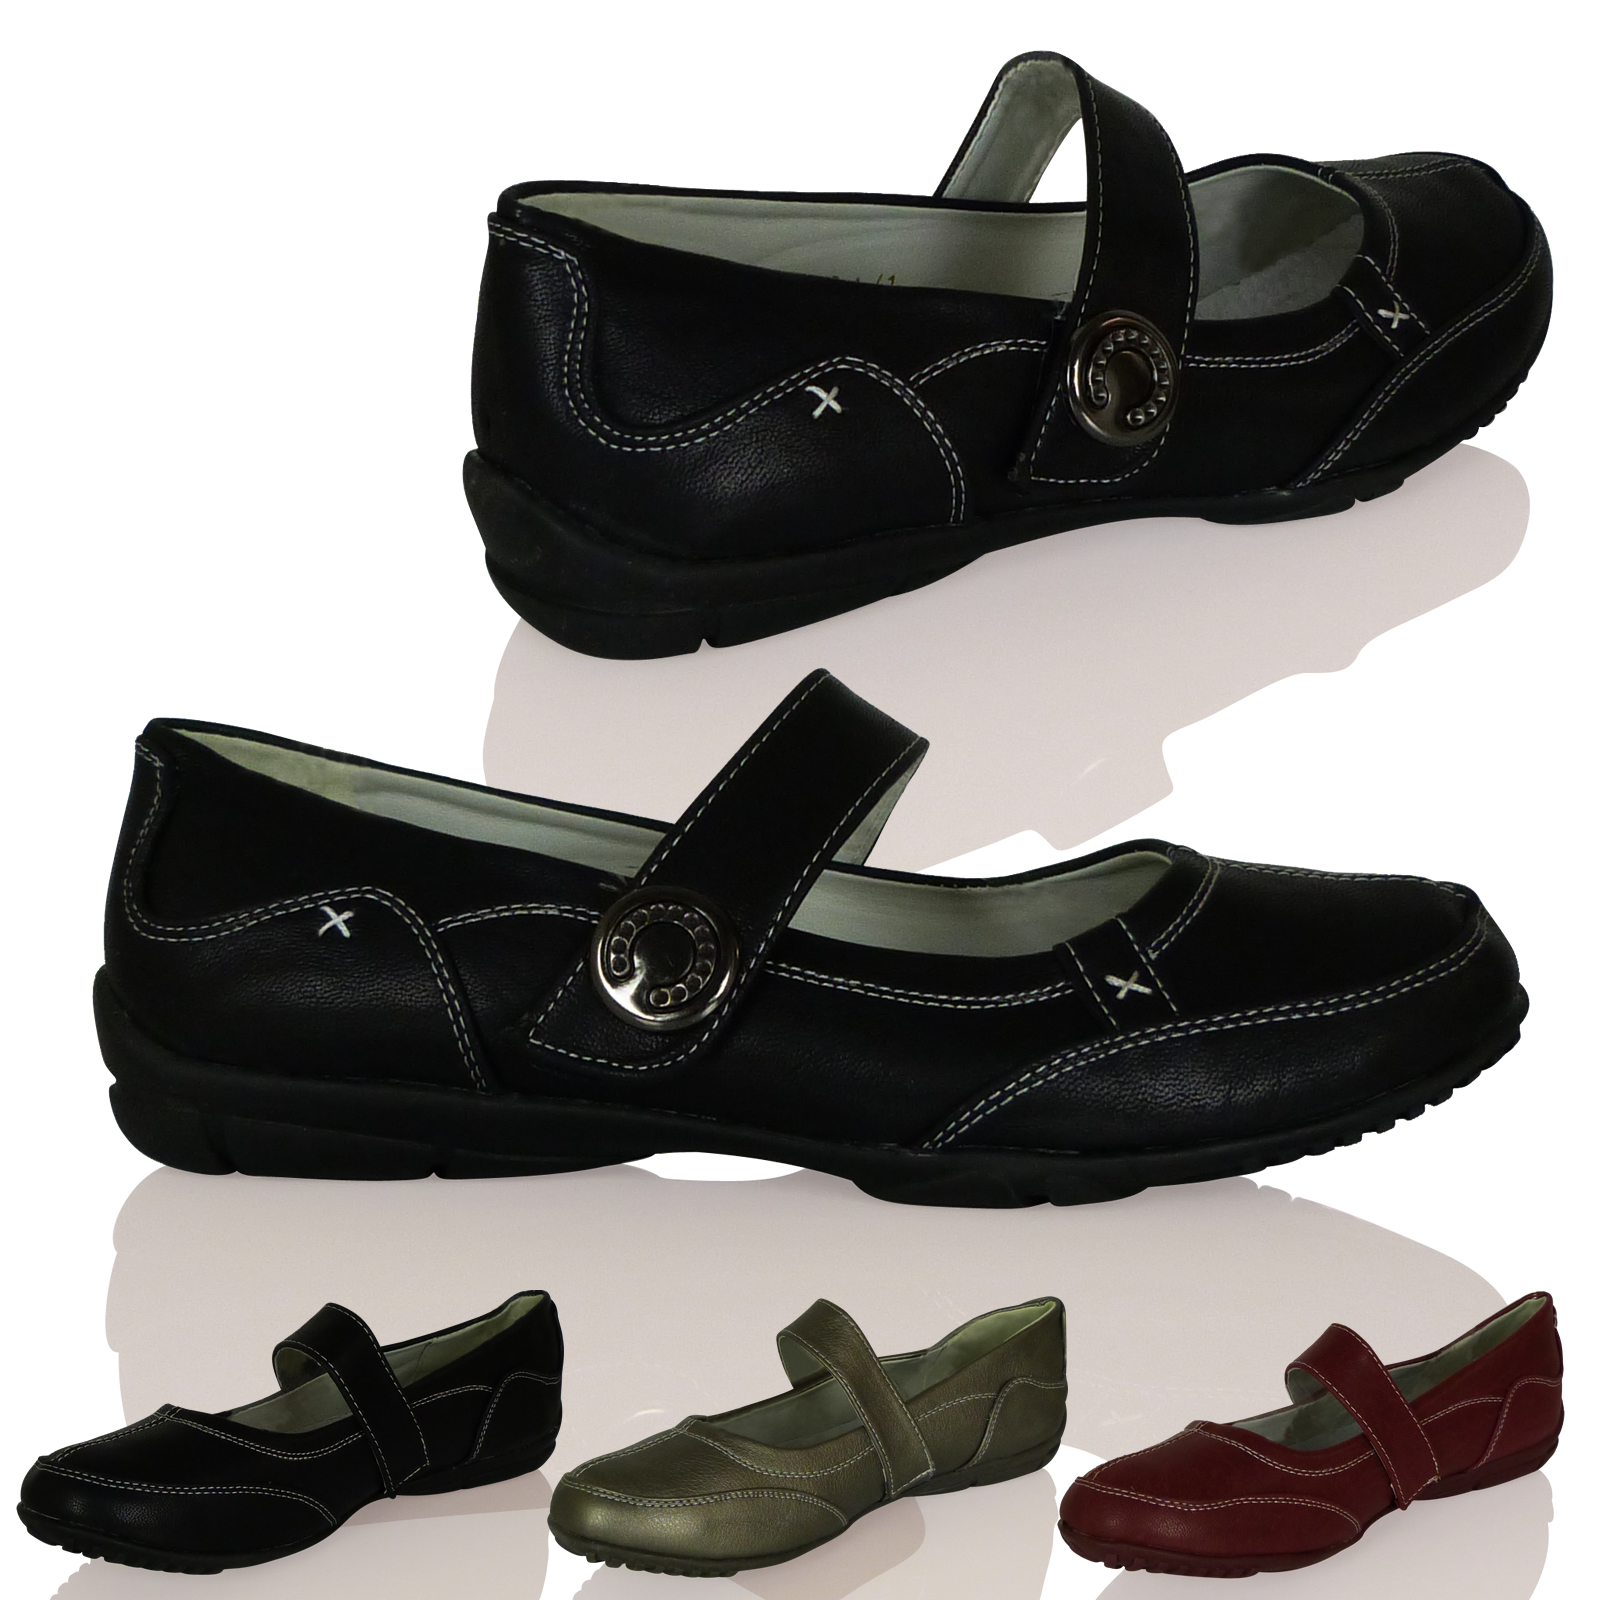 New Womens Ladies Ballerina Velcro Strap Slip On Thick Sole Stylish Shoe Size